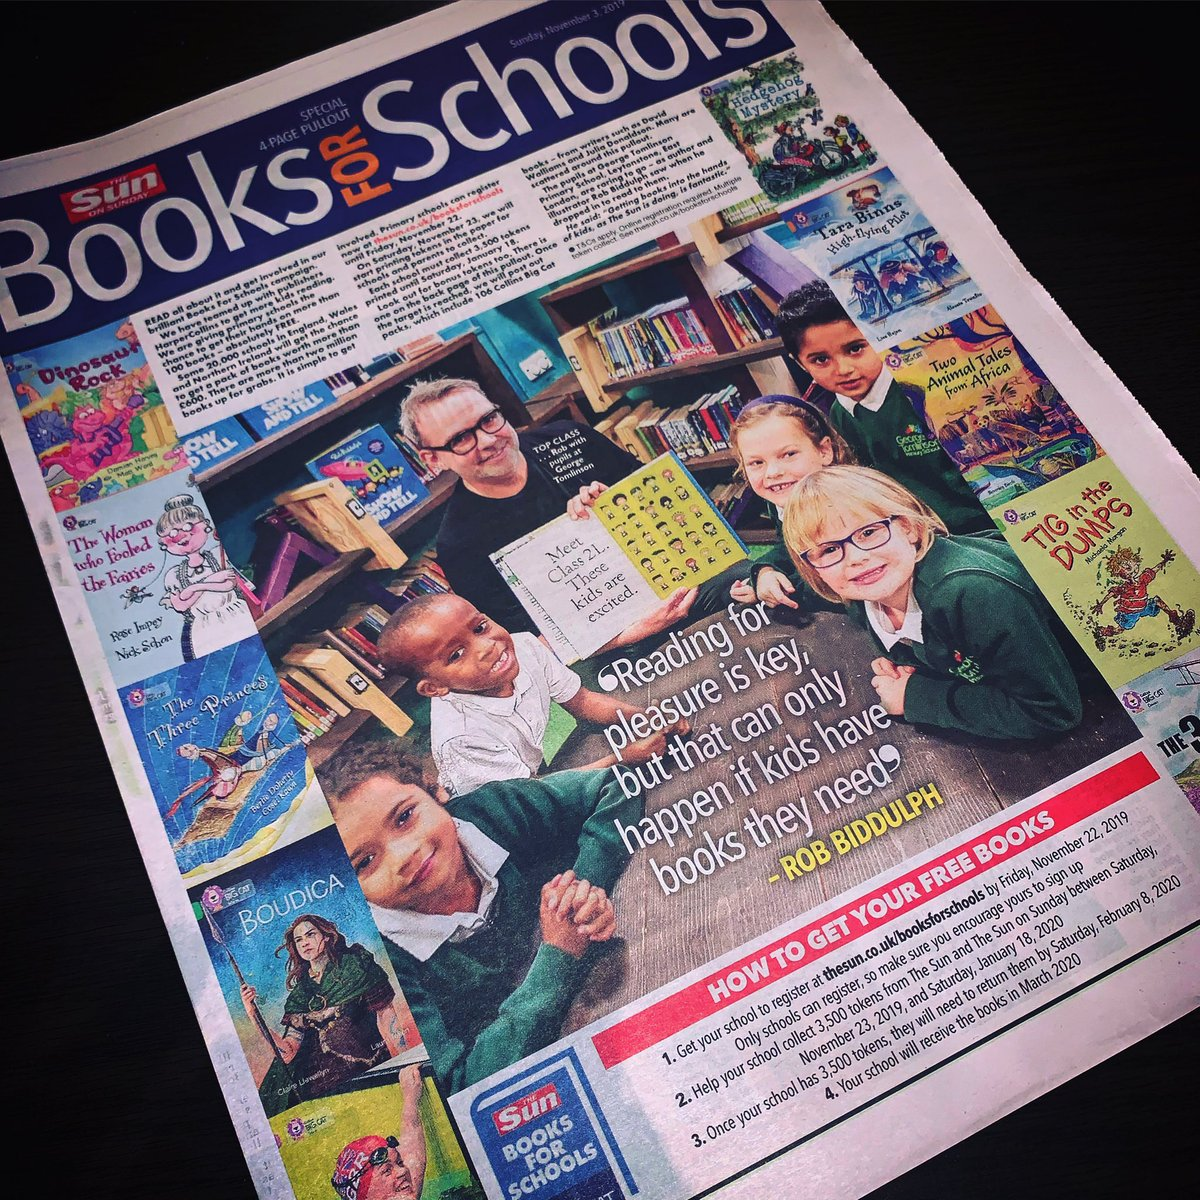 Muggins in today's edition of @TheSun. Very pleased to be supporting their #BookForSchools campaign which gets books into the hands of thousands and thousands of children that might not otherwise get that opportunity.